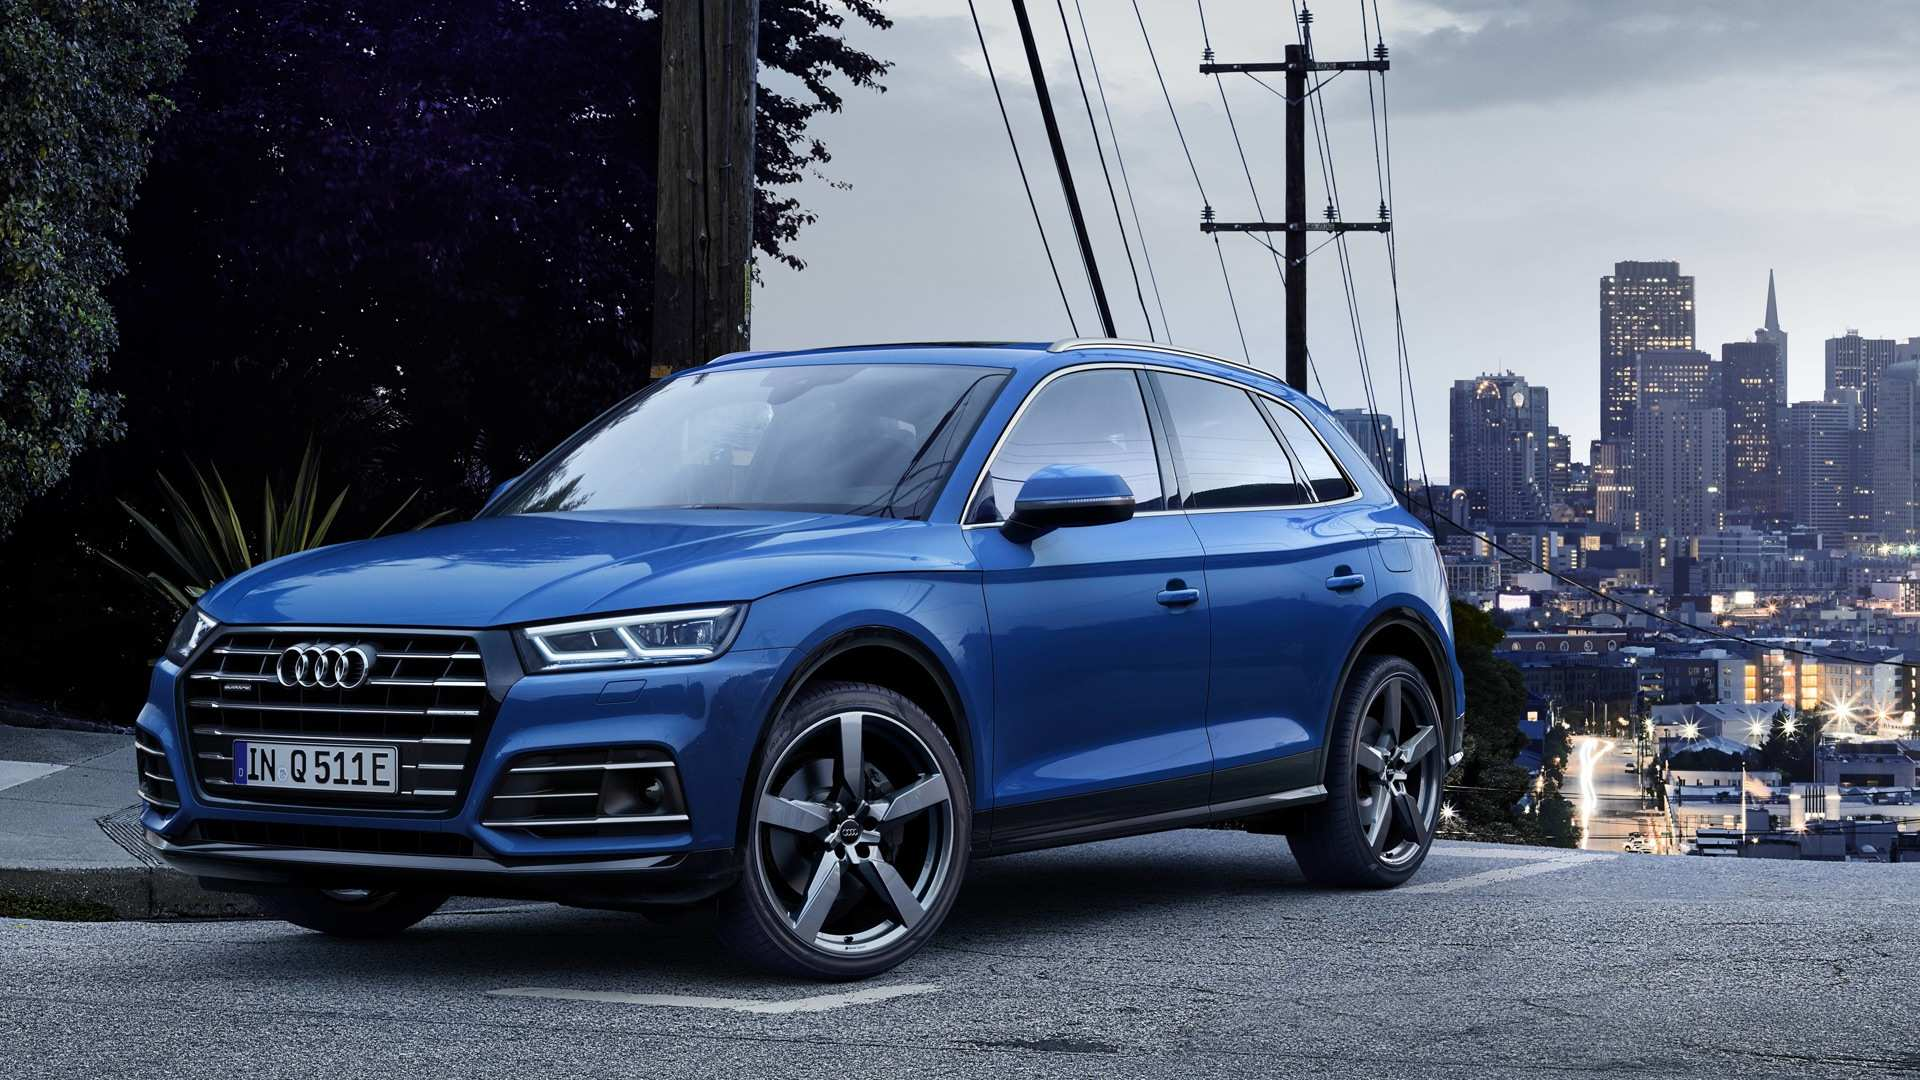 78 Best Review When Will 2020 Audi Q5 Be Available Redesign and Concept with When Will 2020 Audi Q5 Be Available